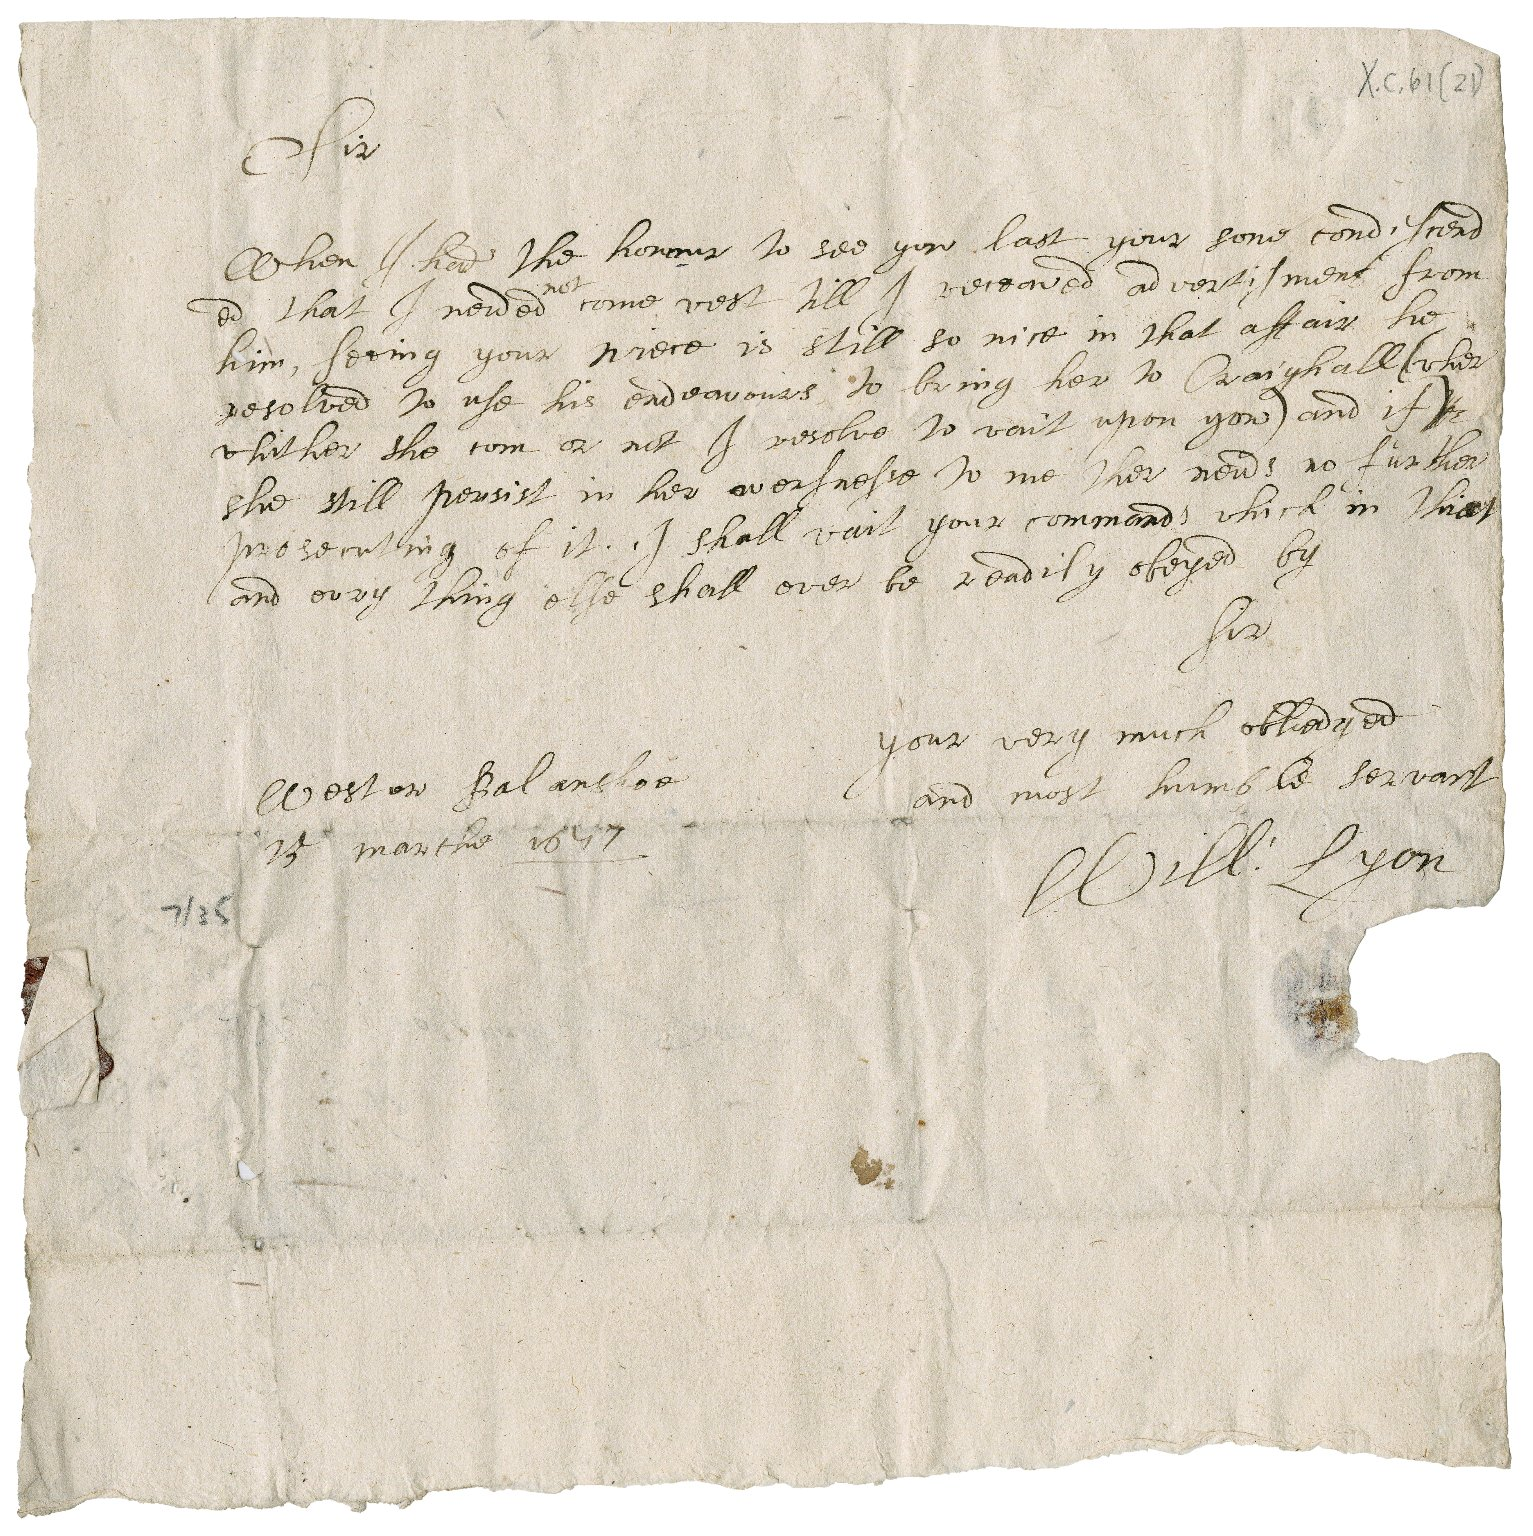 Letter from William Lyon to David Rattray of Craighall, Wester Balinshoe